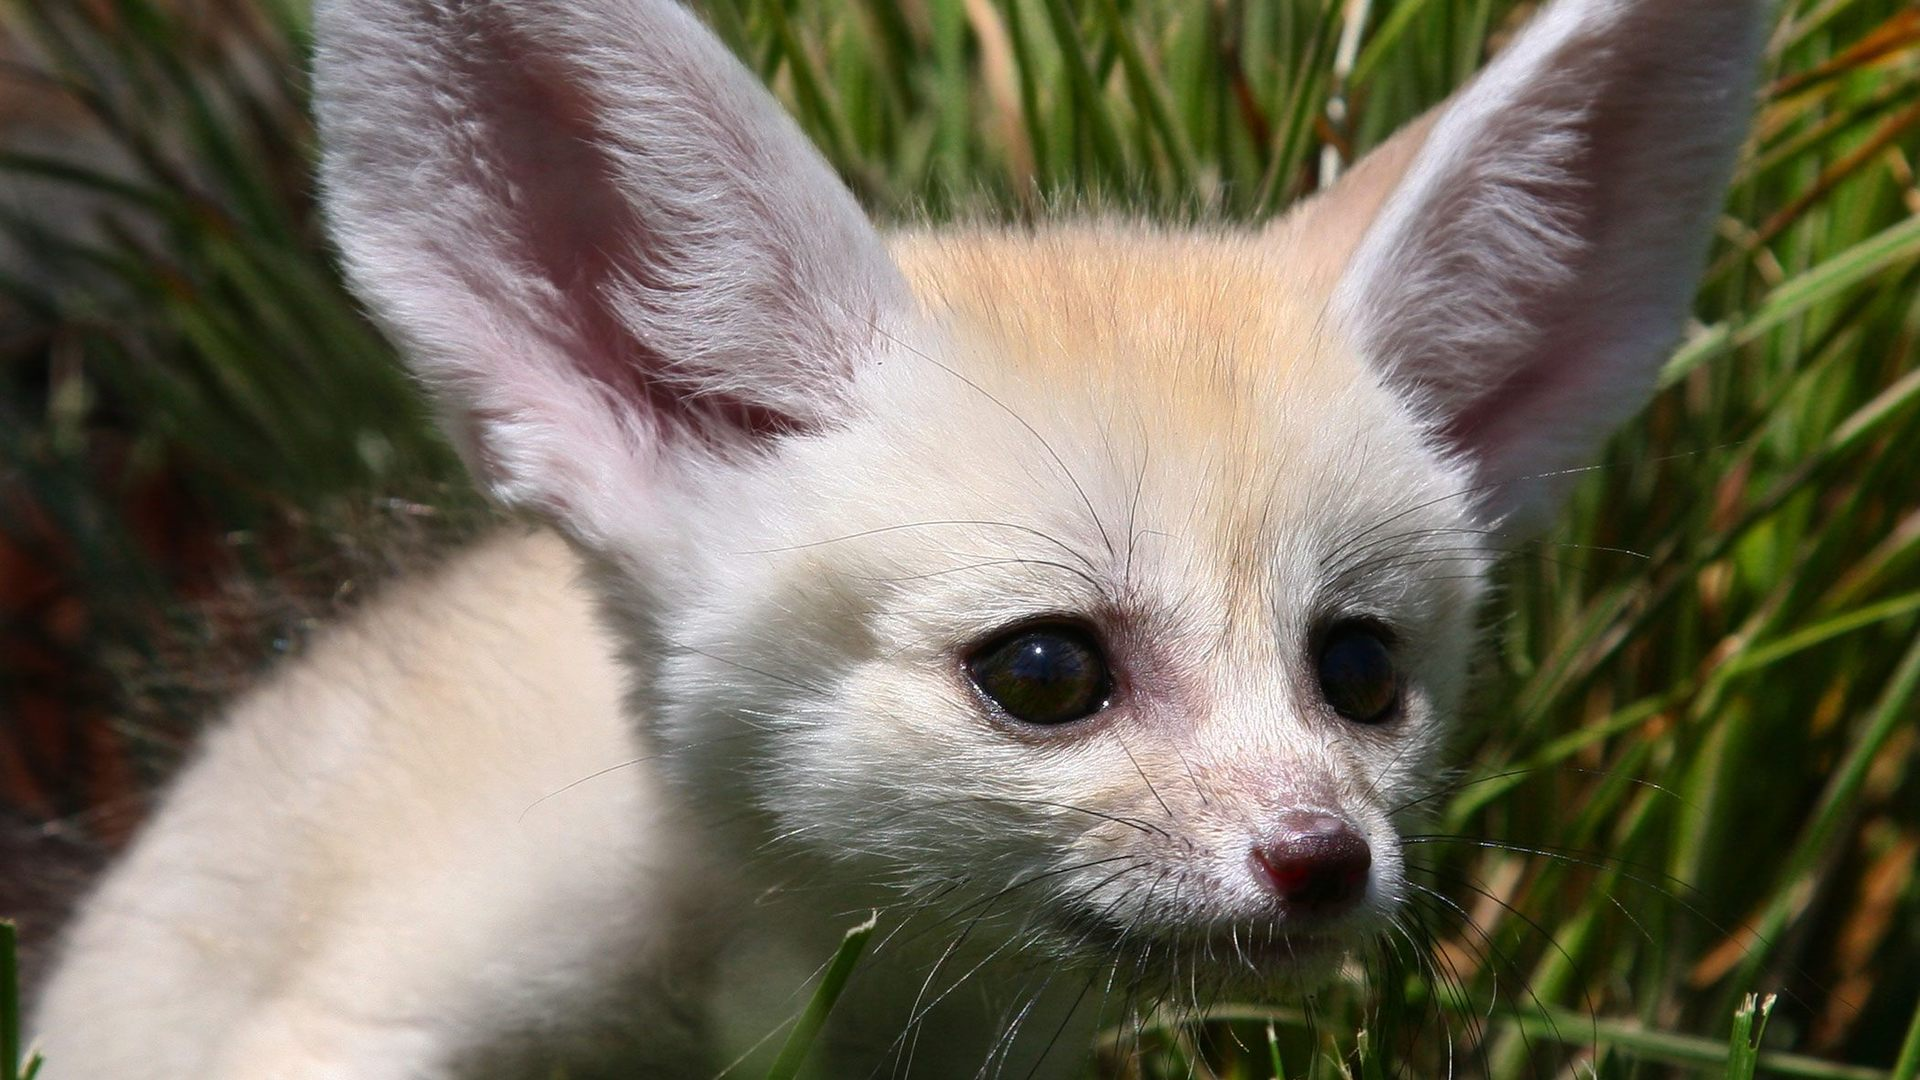 Cute Baby Hd Wallpapers For Desktop 13 Excellent Hd Fennec Fox Wallpapers